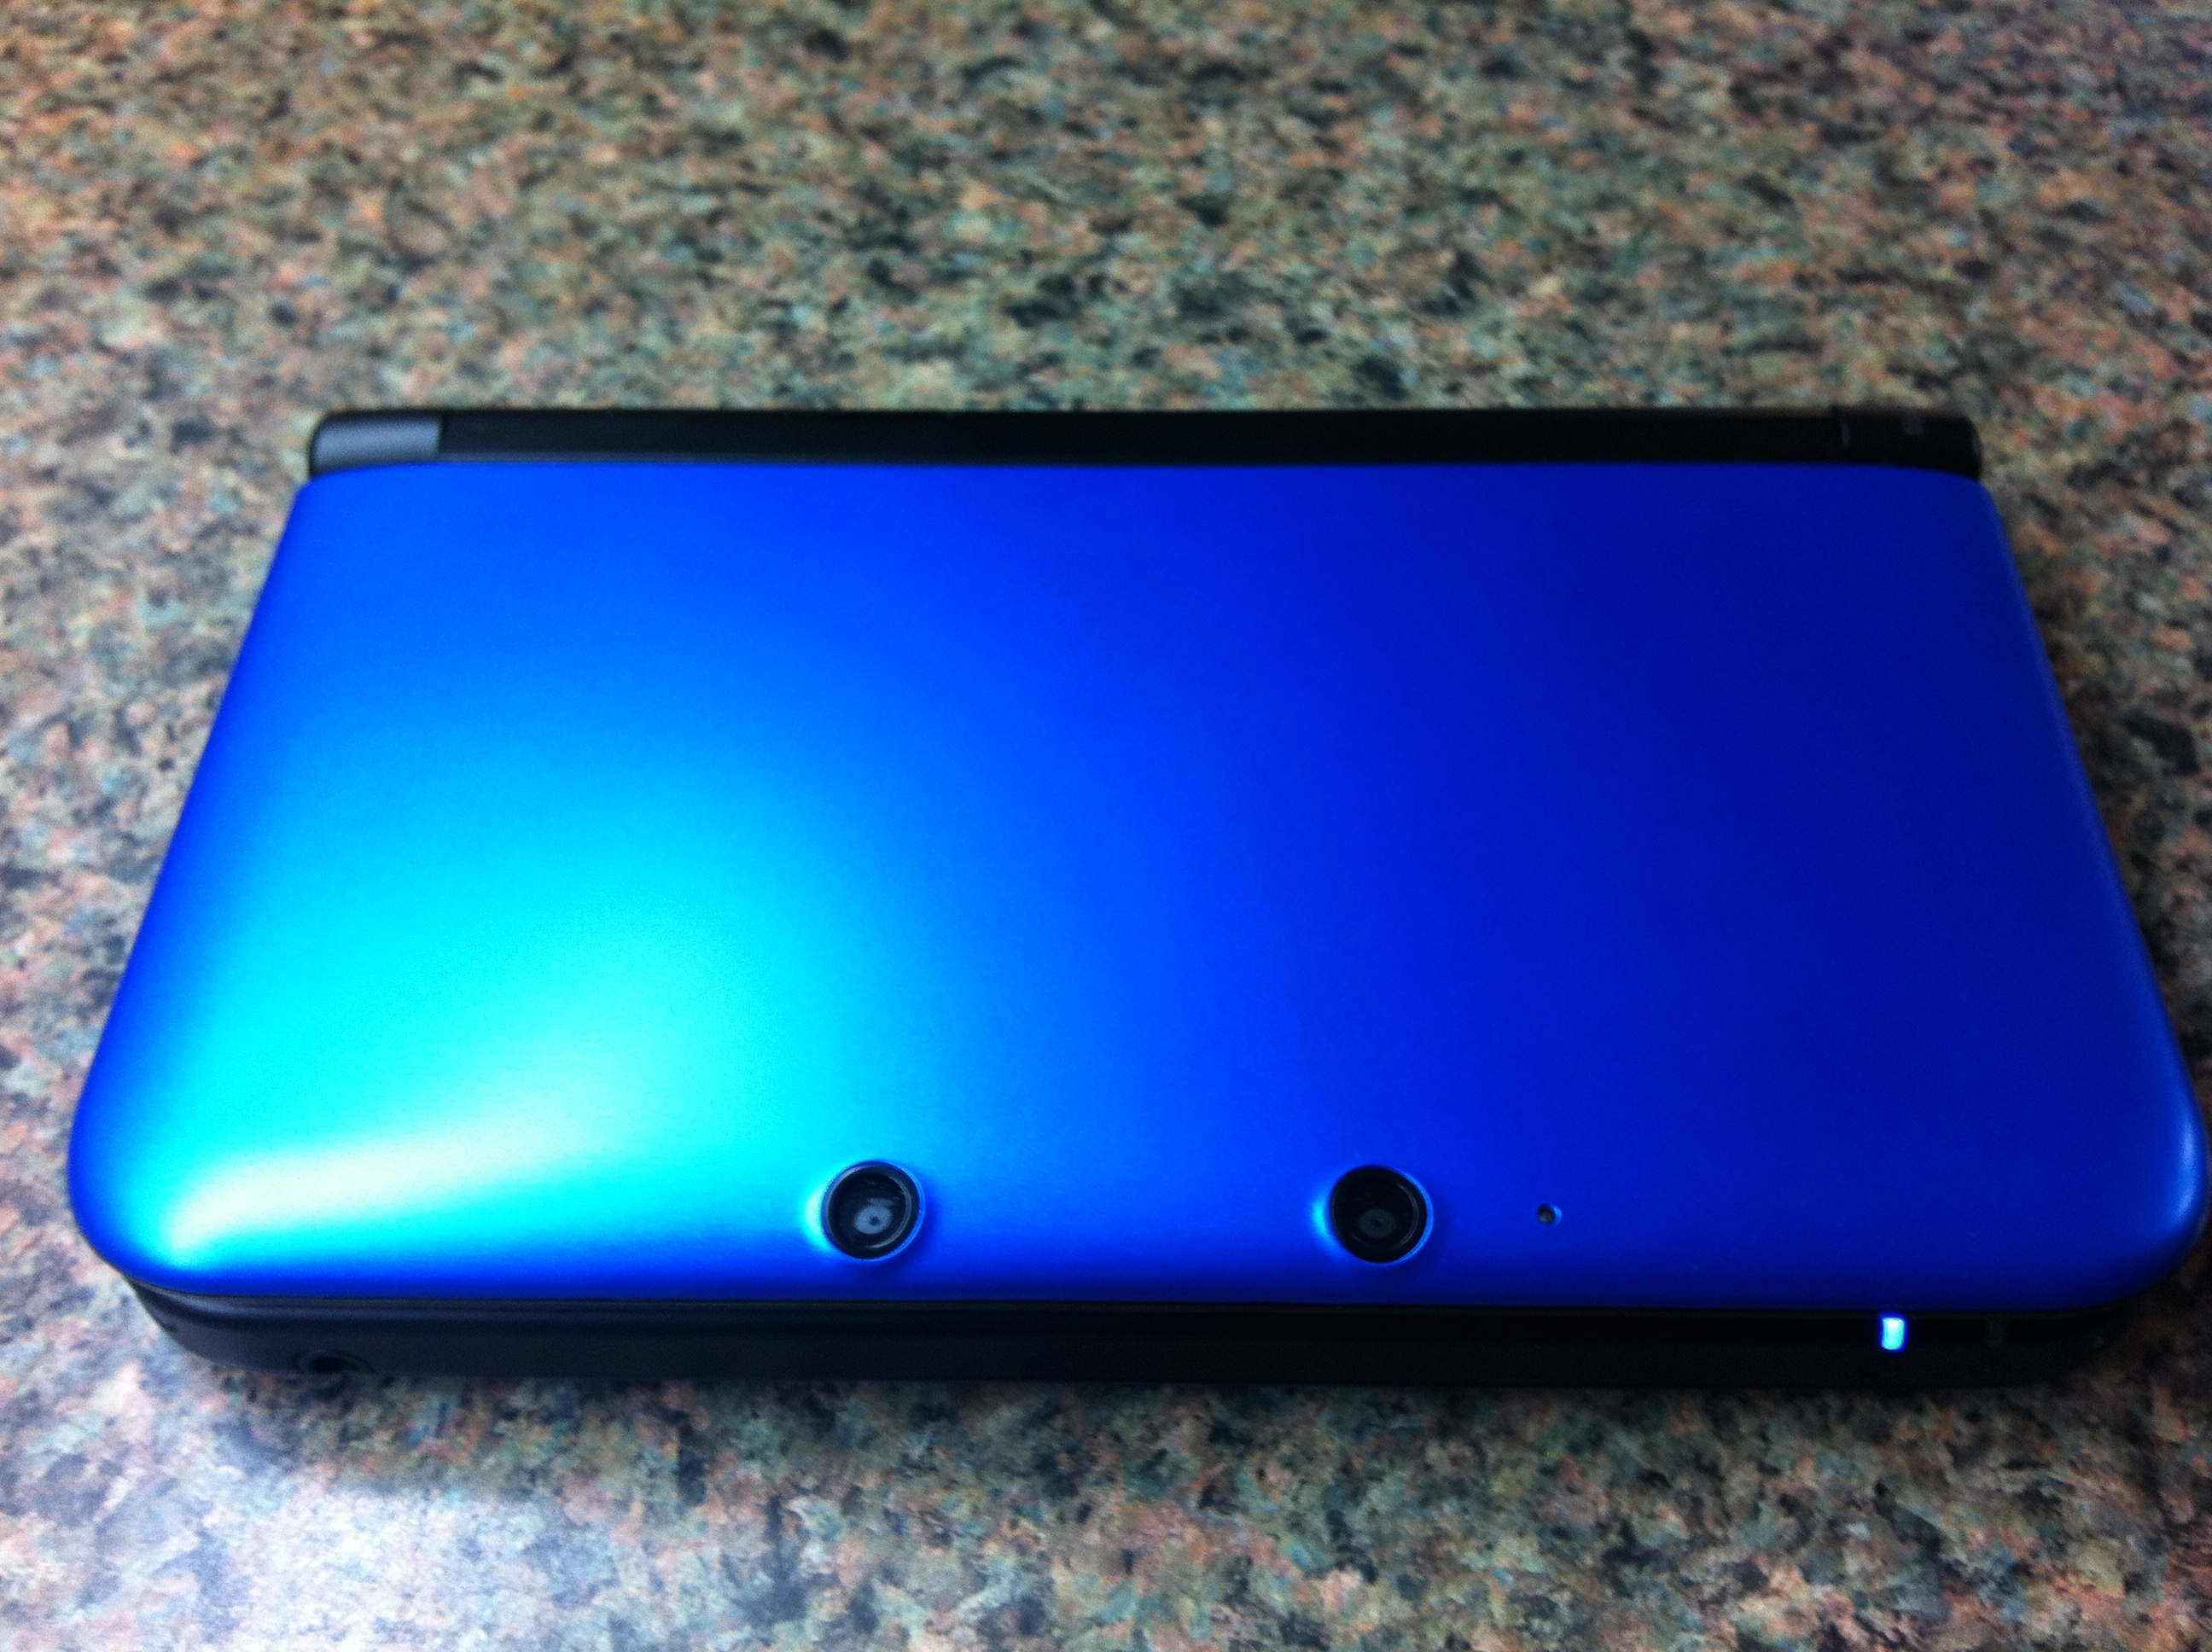 Review: 3DS XL – Size matters